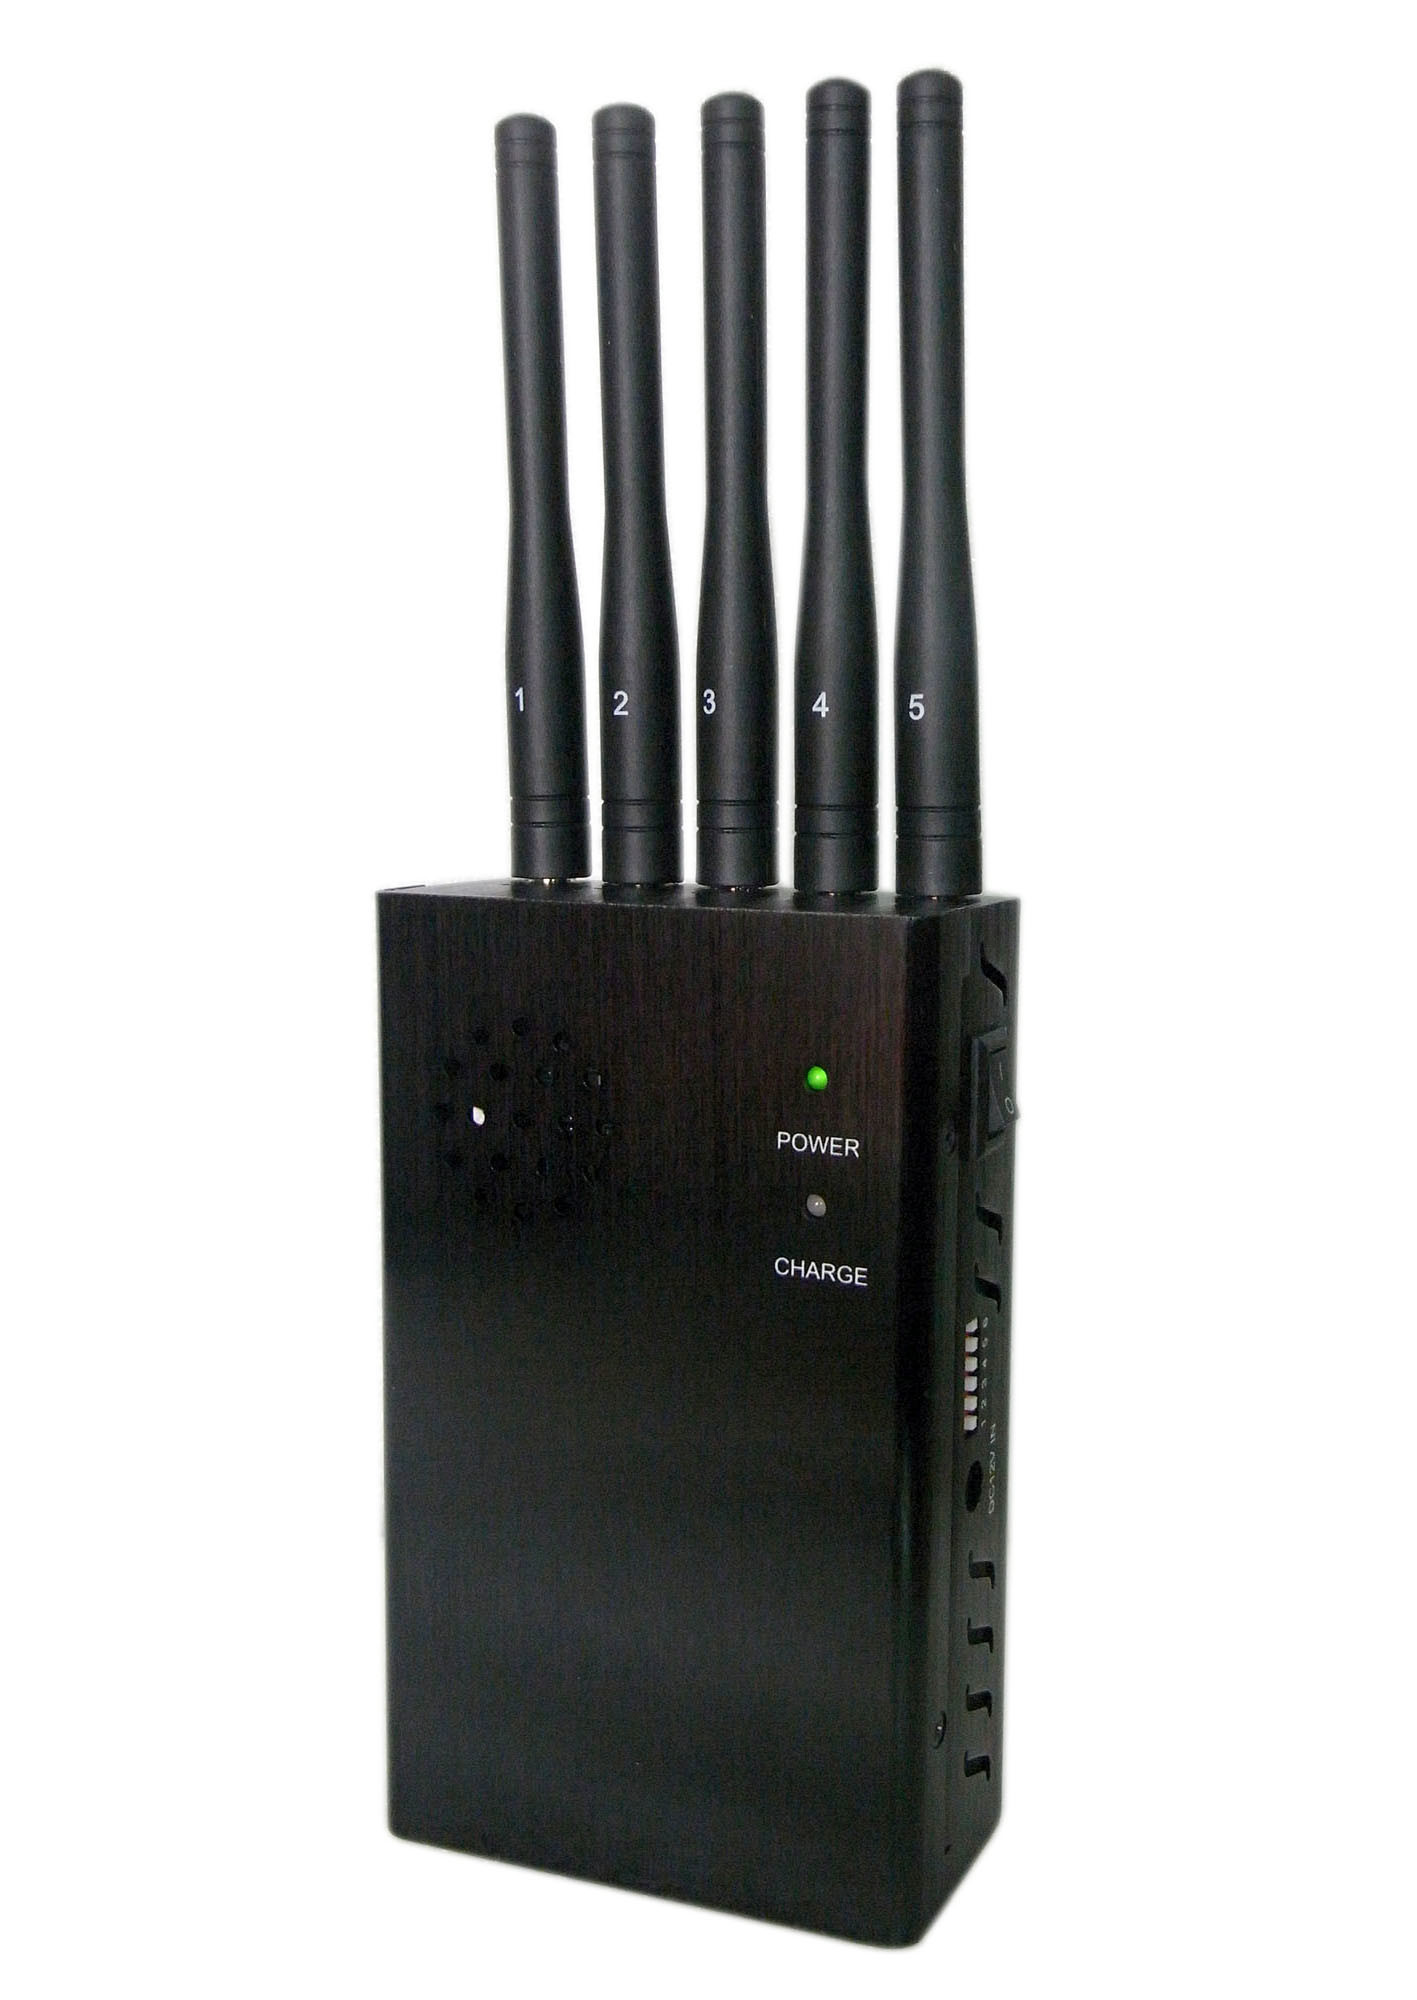 phone jammer arduino data - China New 5 Powerful Antenna 3G 4glte Wimax Signal Jamers, Cell Phone + GPS + WiFi Jammer 5 Antennas - China 5 Band Signal Blockers, Five Antennas Jammers